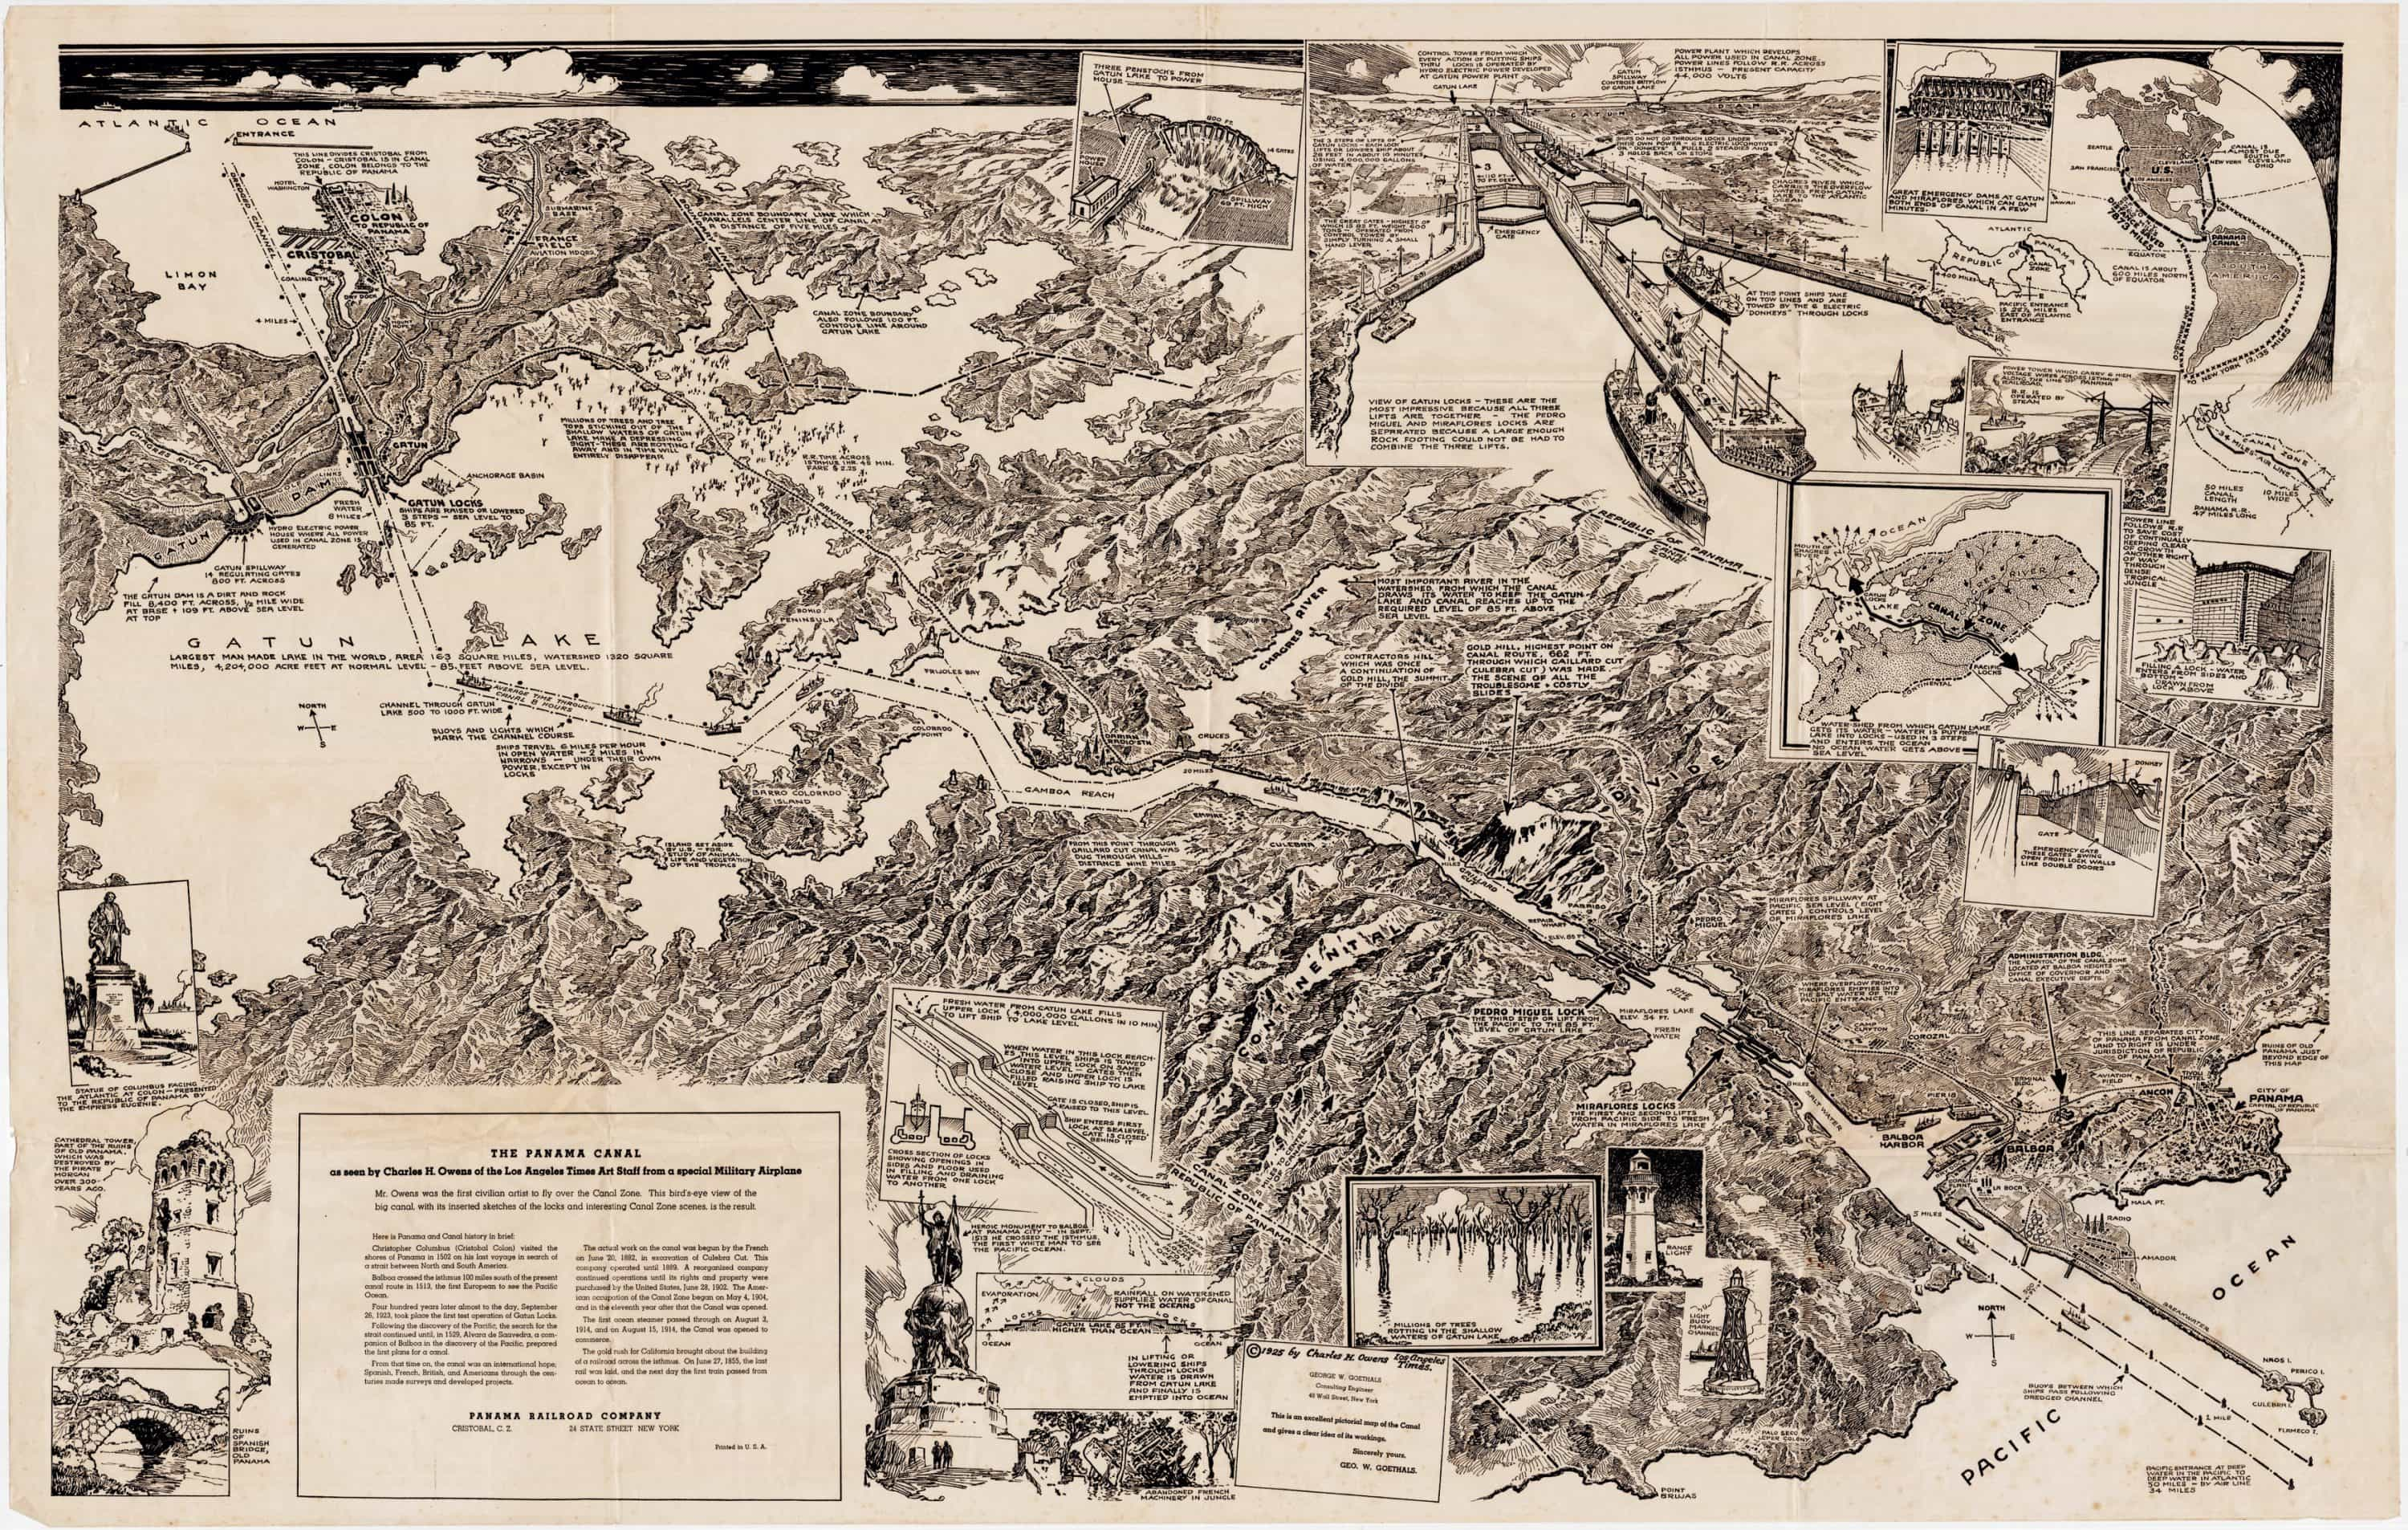 The Panama Canal, as seen from an airplane in 1925 - Rare & Antique Maps